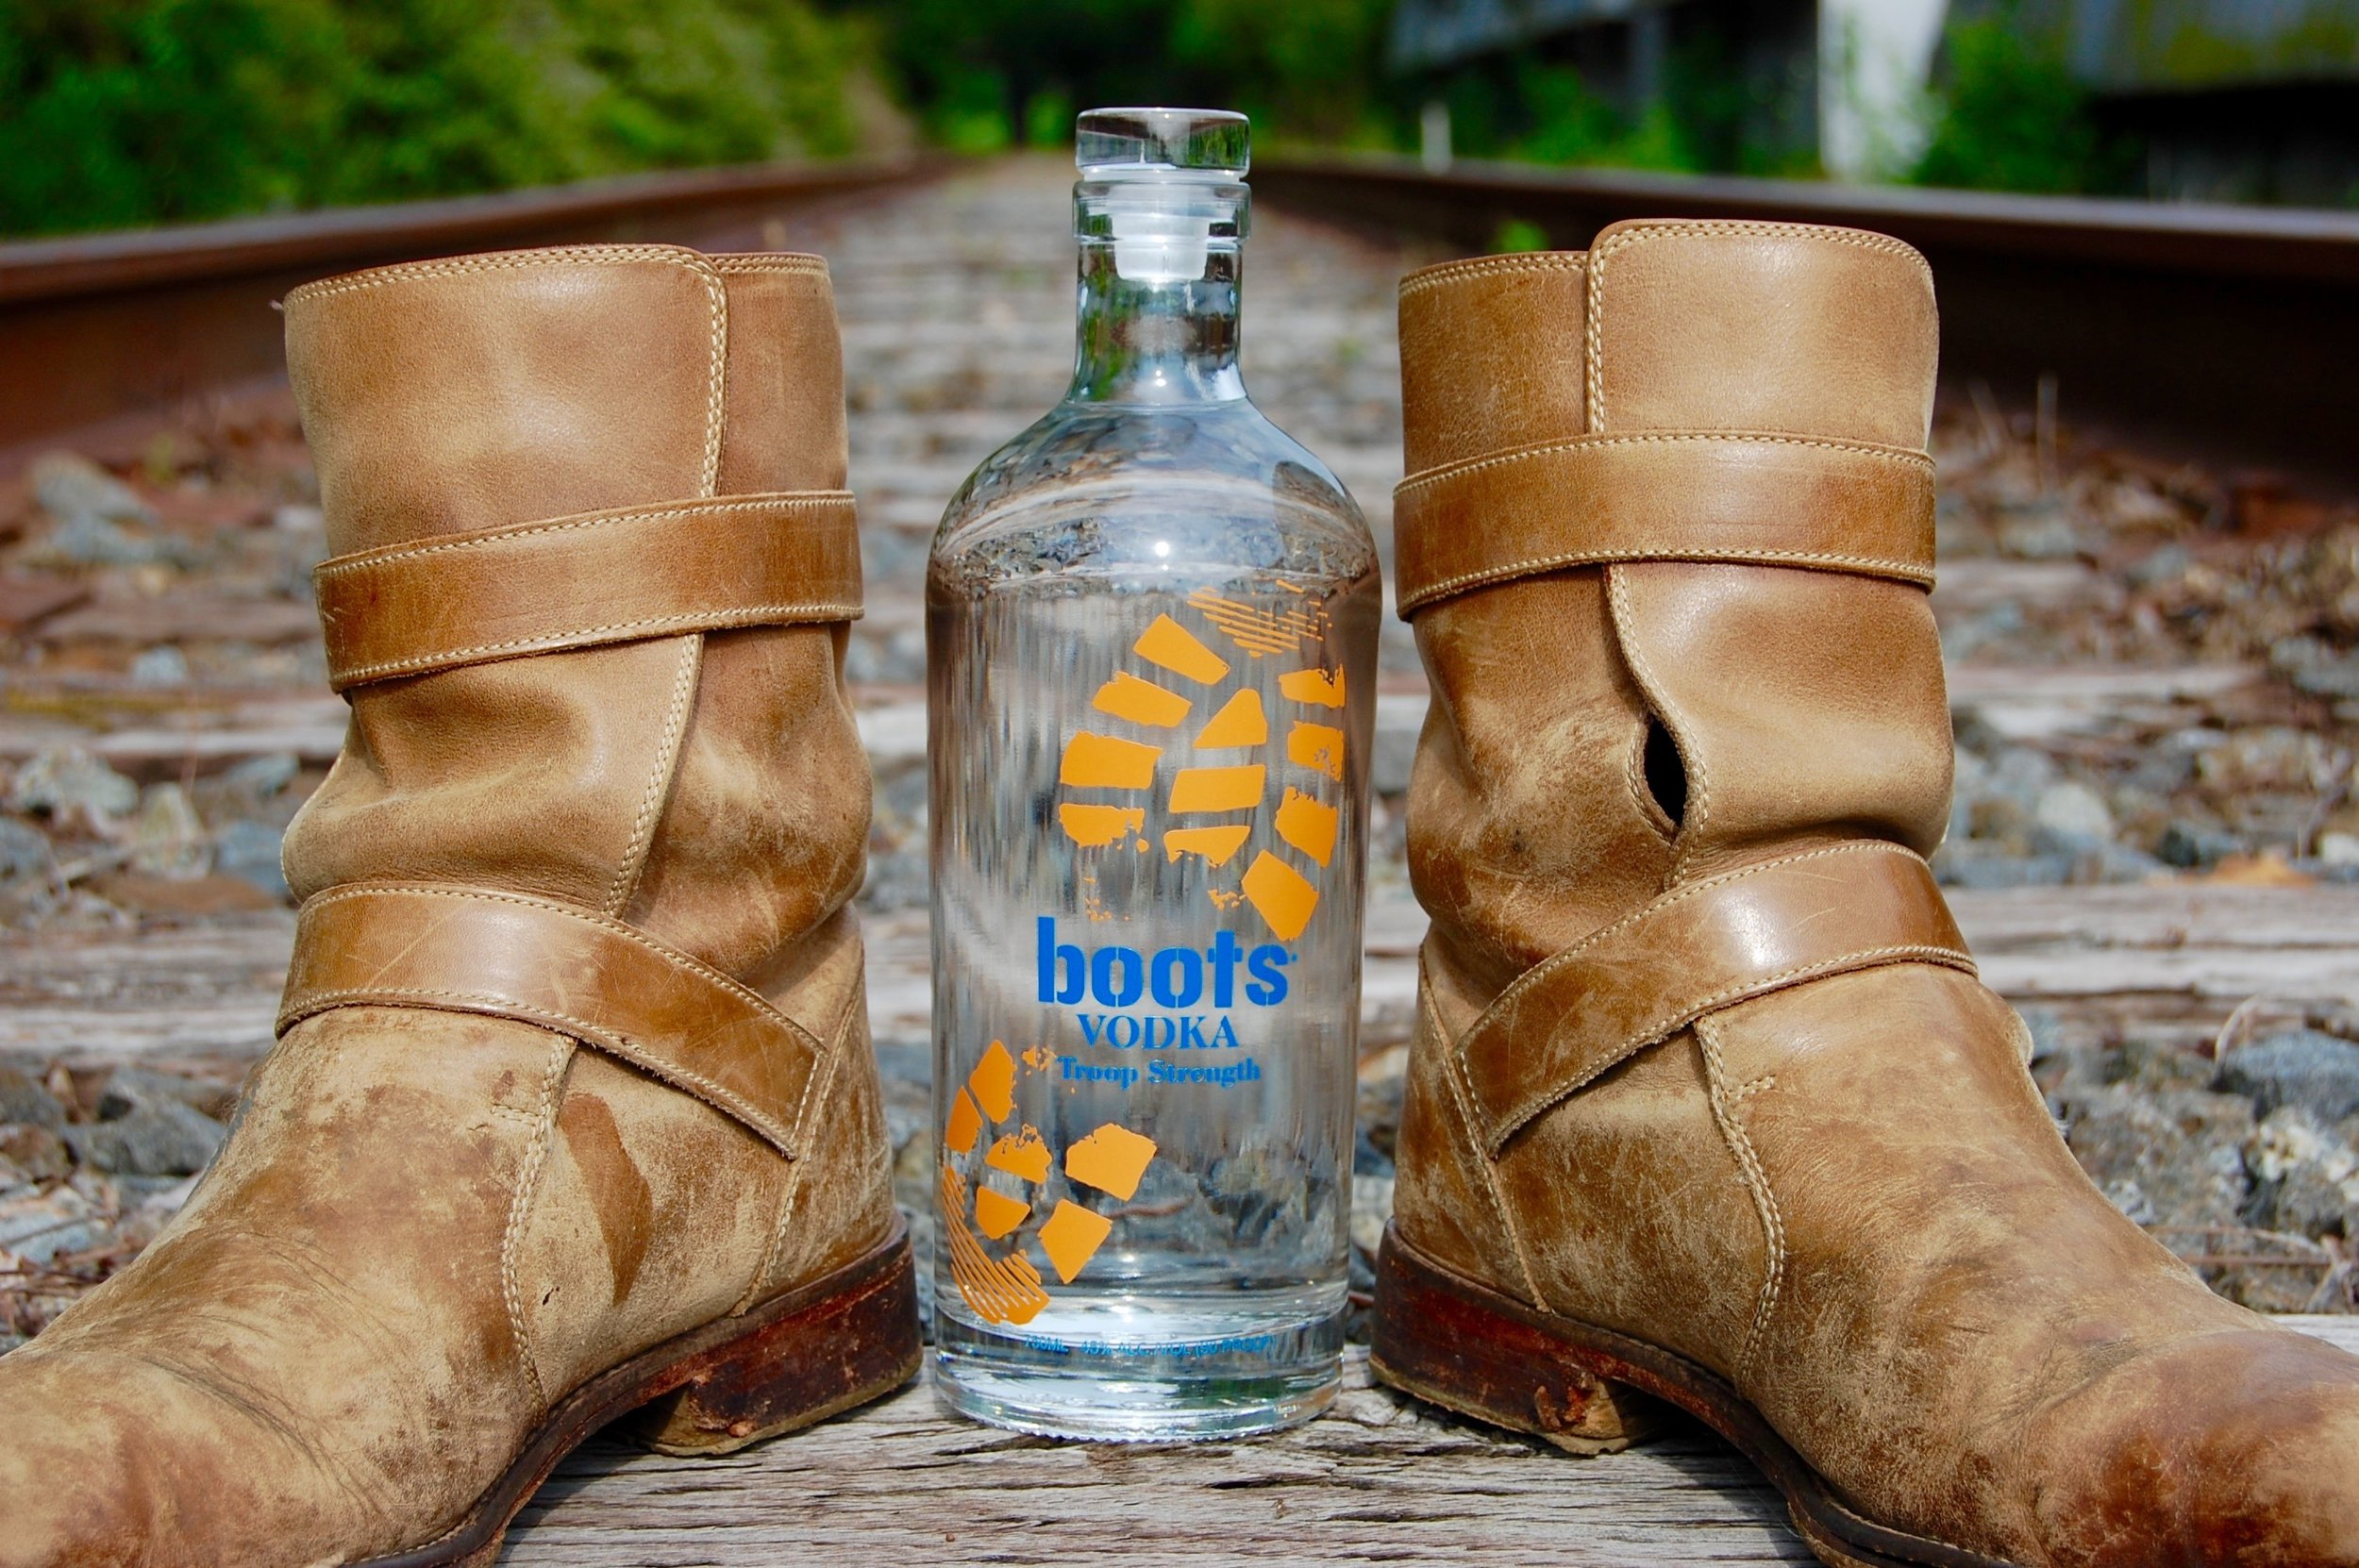 Boots Vodka on Railroad - website pic.jpg